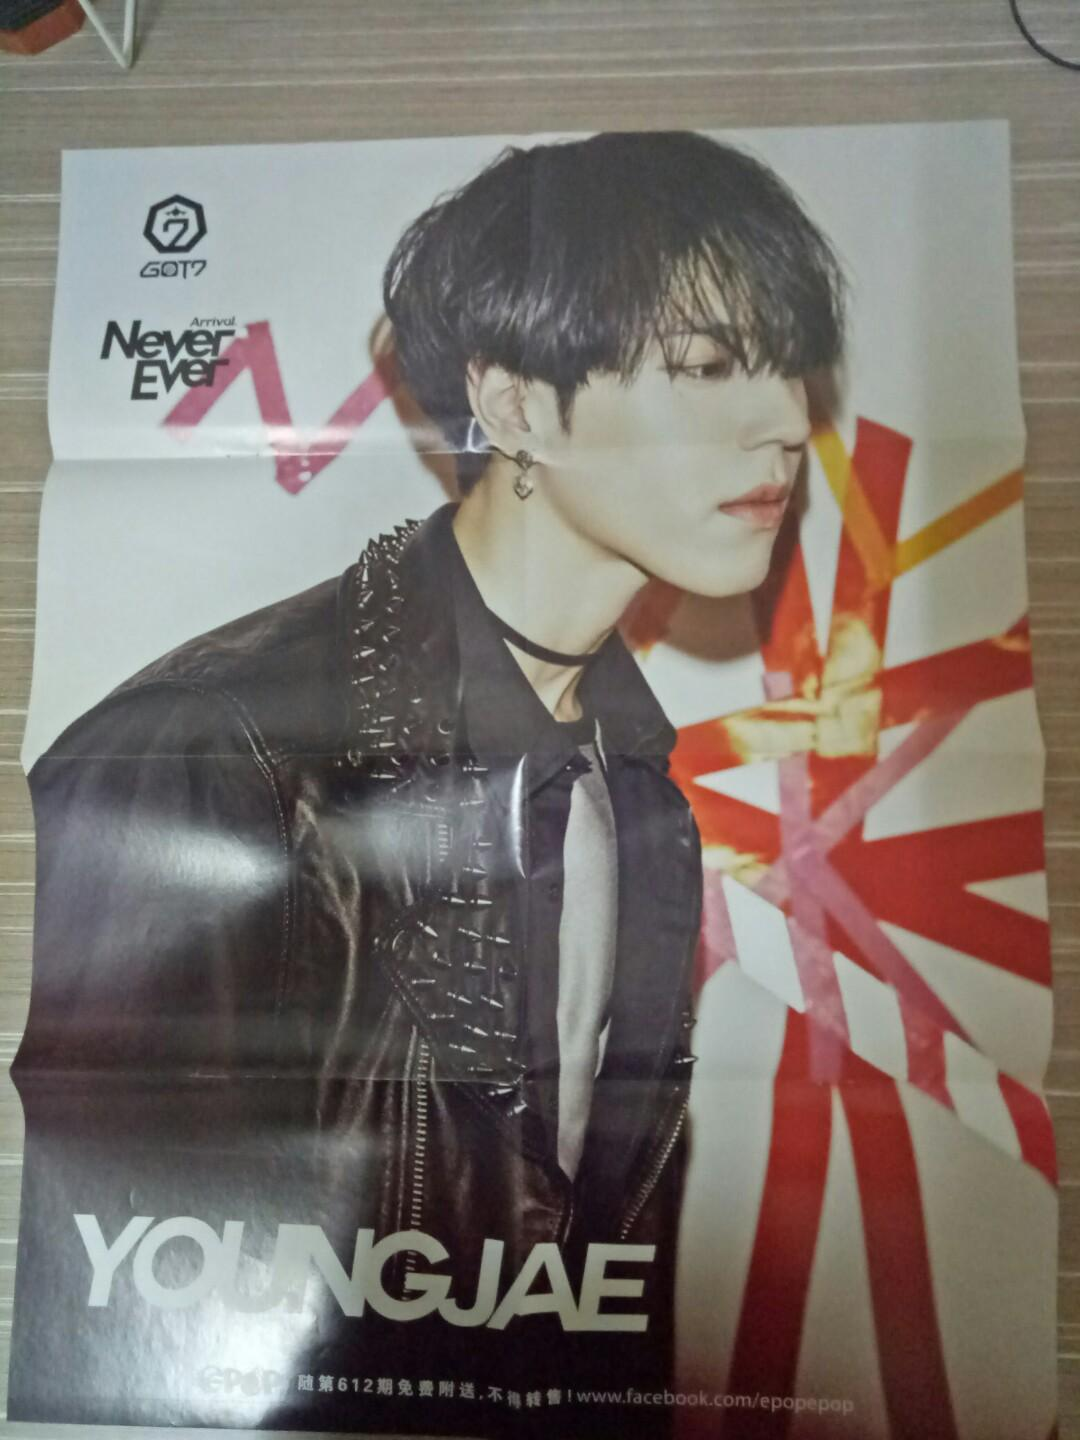 GOT7 <NEVER EVER> / GOT7 YUGYEOM double page poster